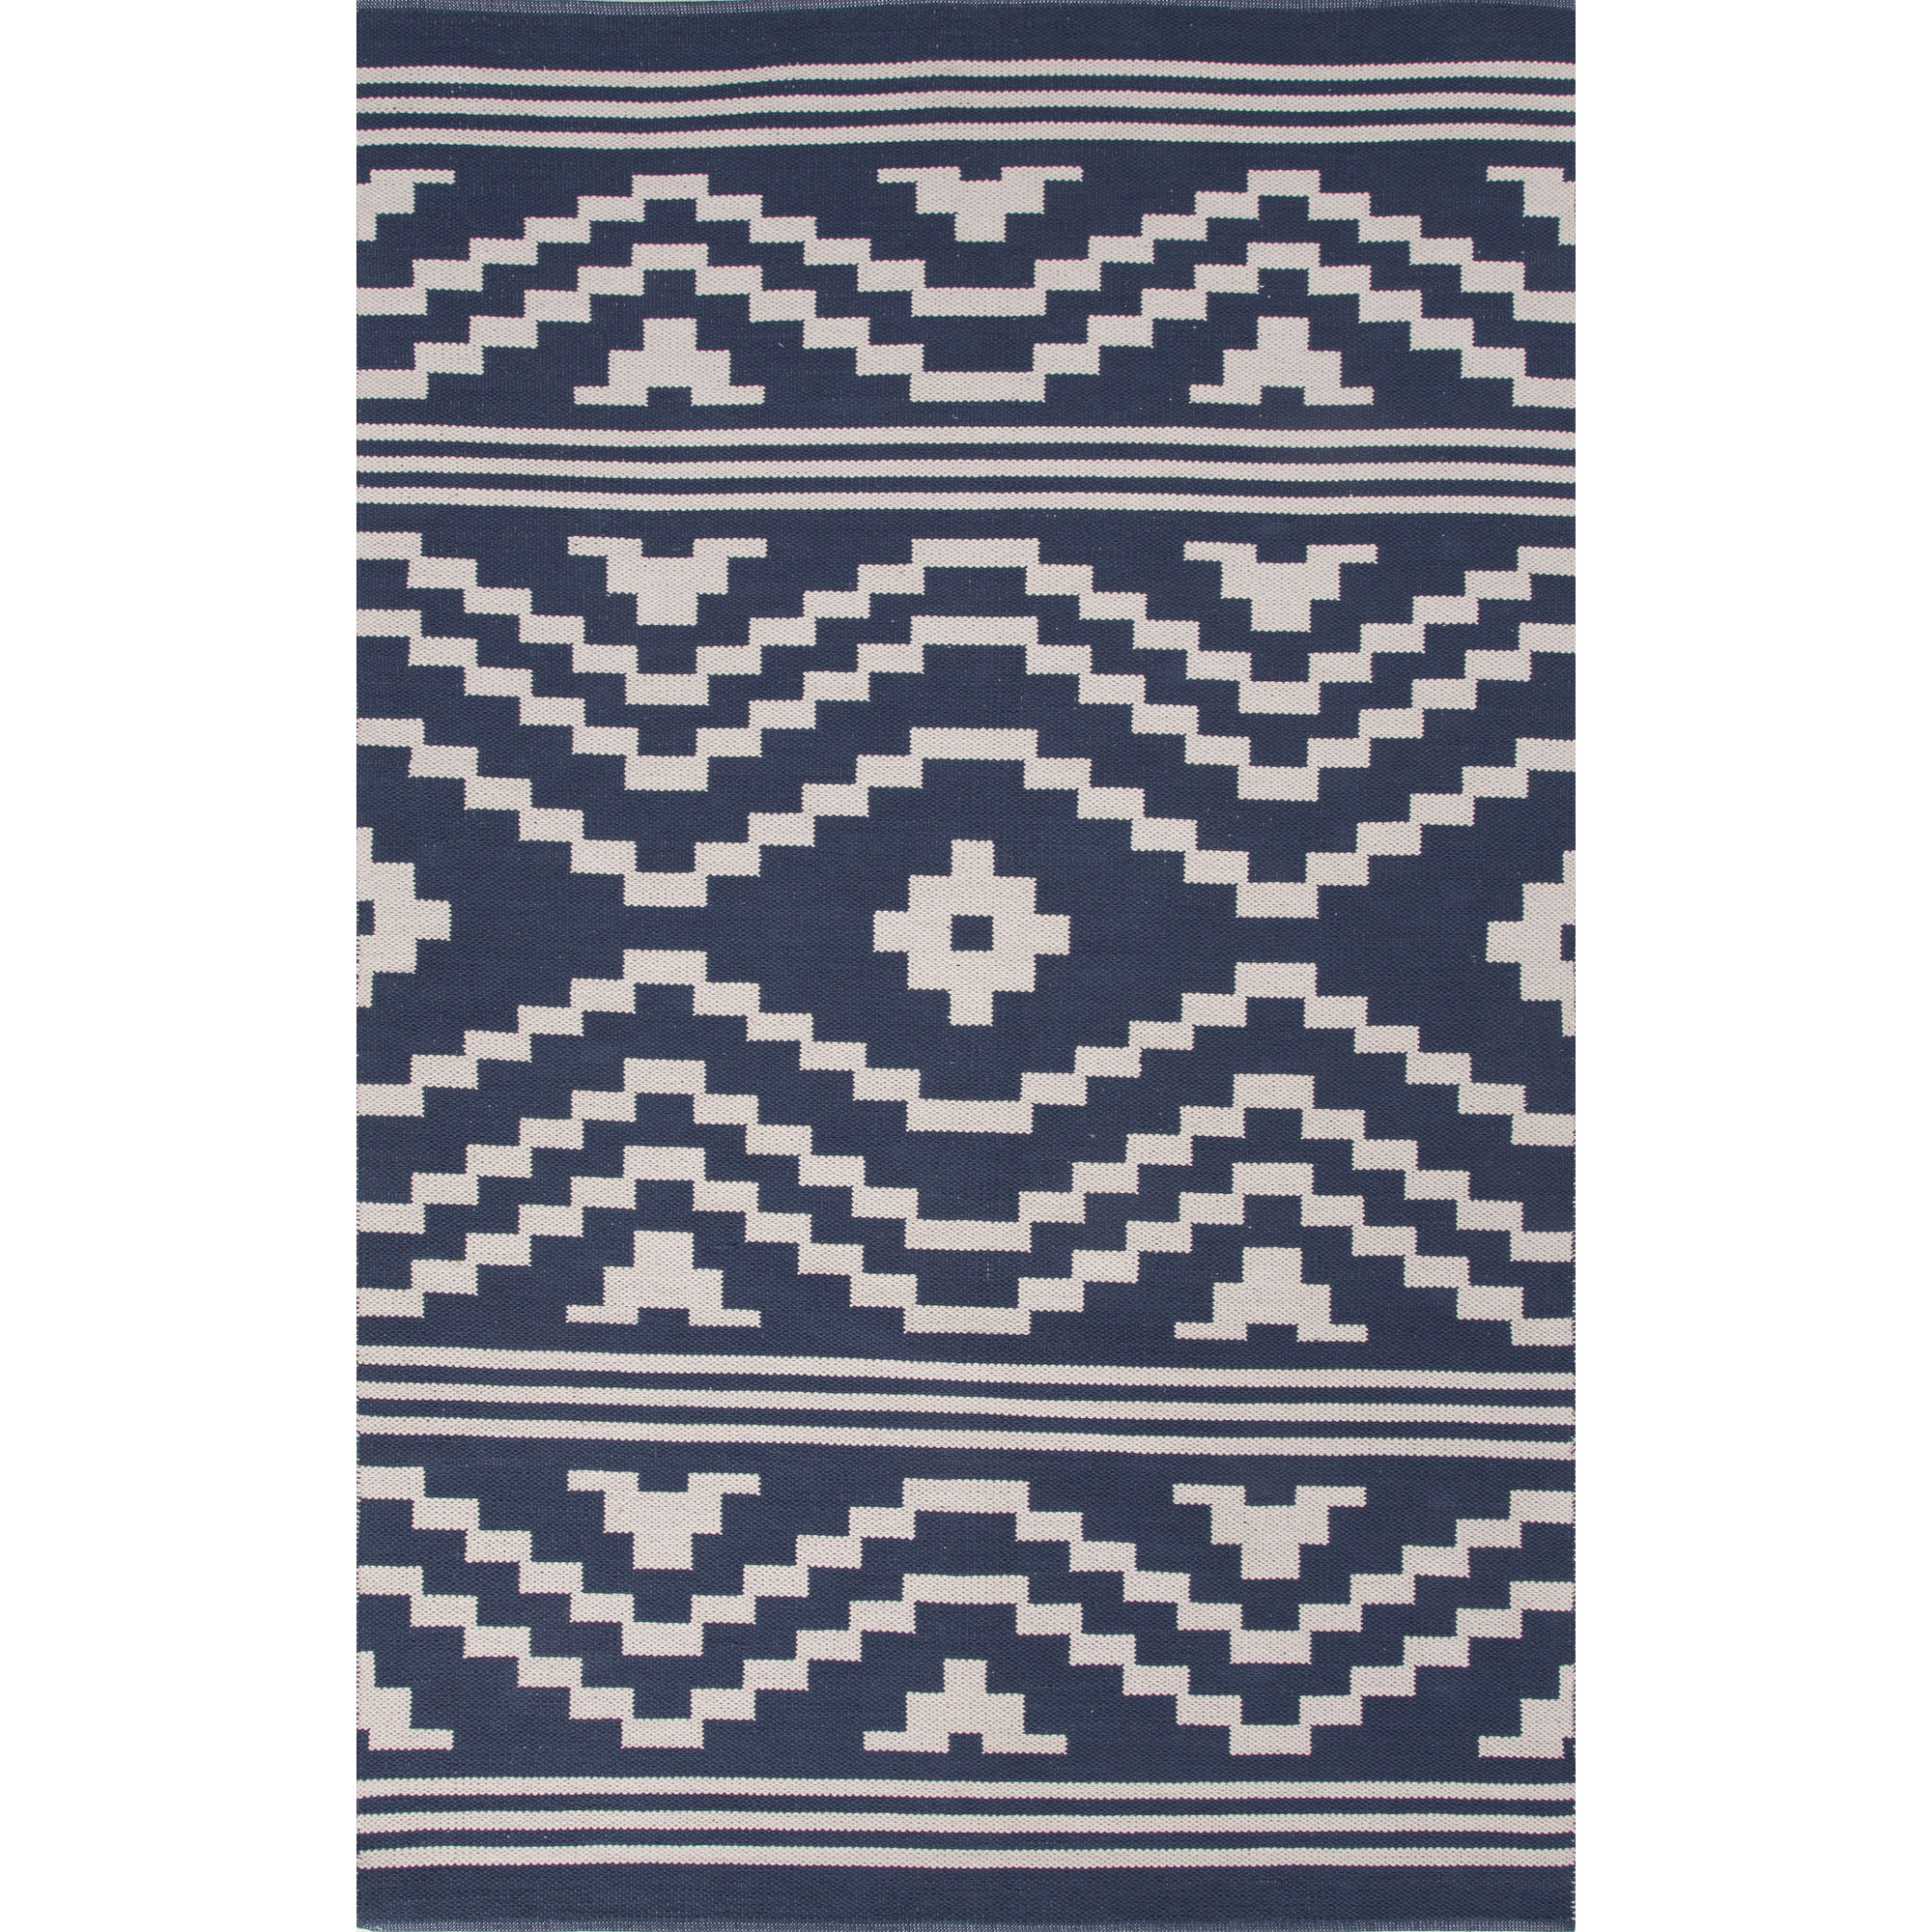 JAIPUR Rugs Traditions Modern Cotton Flat Weave 8 x 11 Rug - Item Number: RUG122225